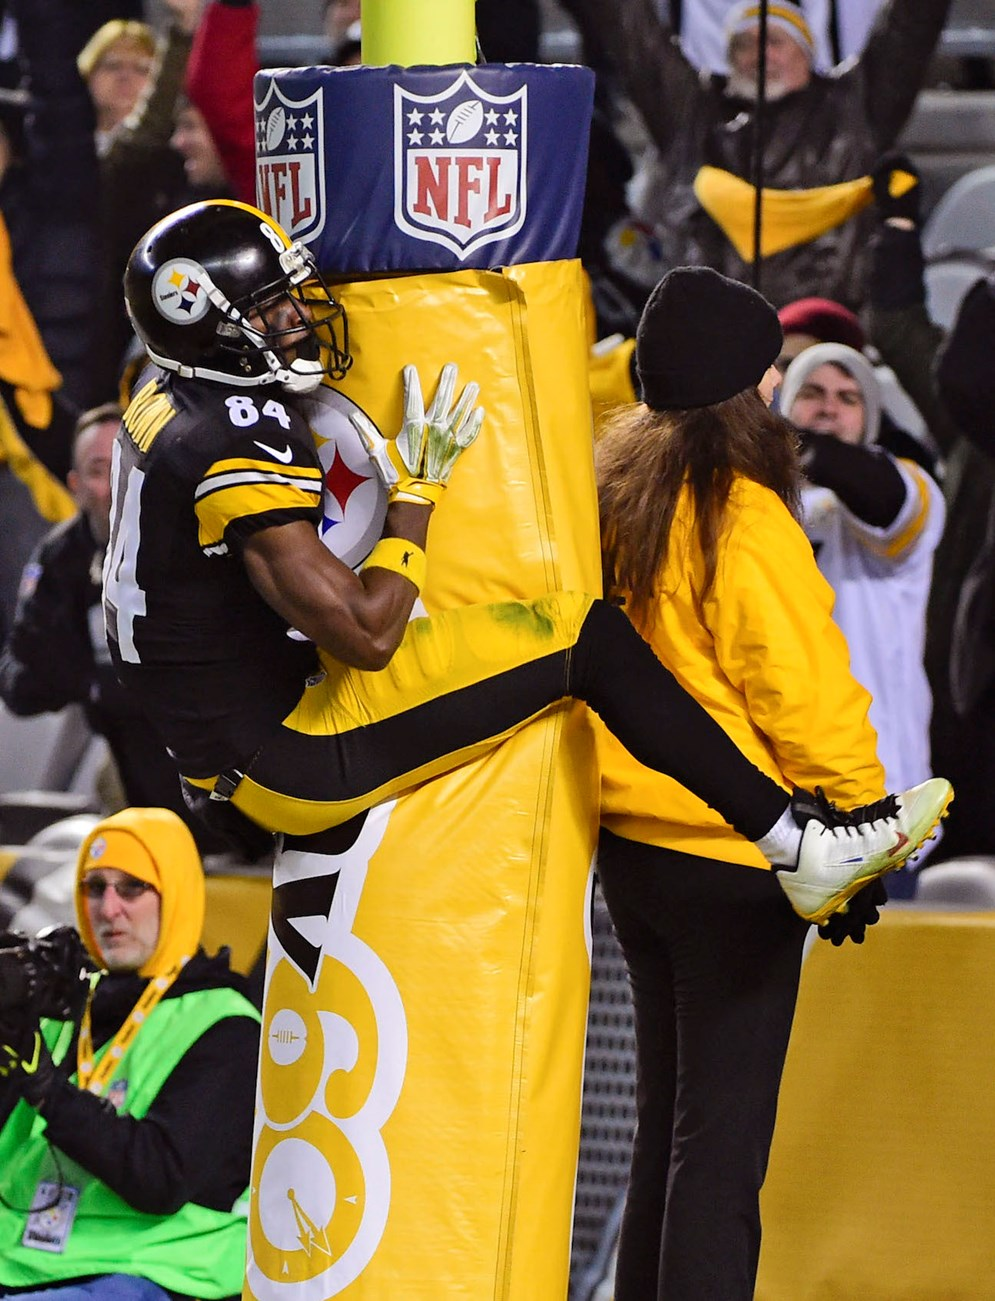 Pittsburgh Steelers wide receiver Antonio Brown was fined $11,576 for jumping on the goal post to celebrate a touchdown in a 2015 game against the Indianapolis Colts. Brown received an unsportsmanlike penalty for using the goalpost as a prop. (AP Photo/Fred Vuich, File)